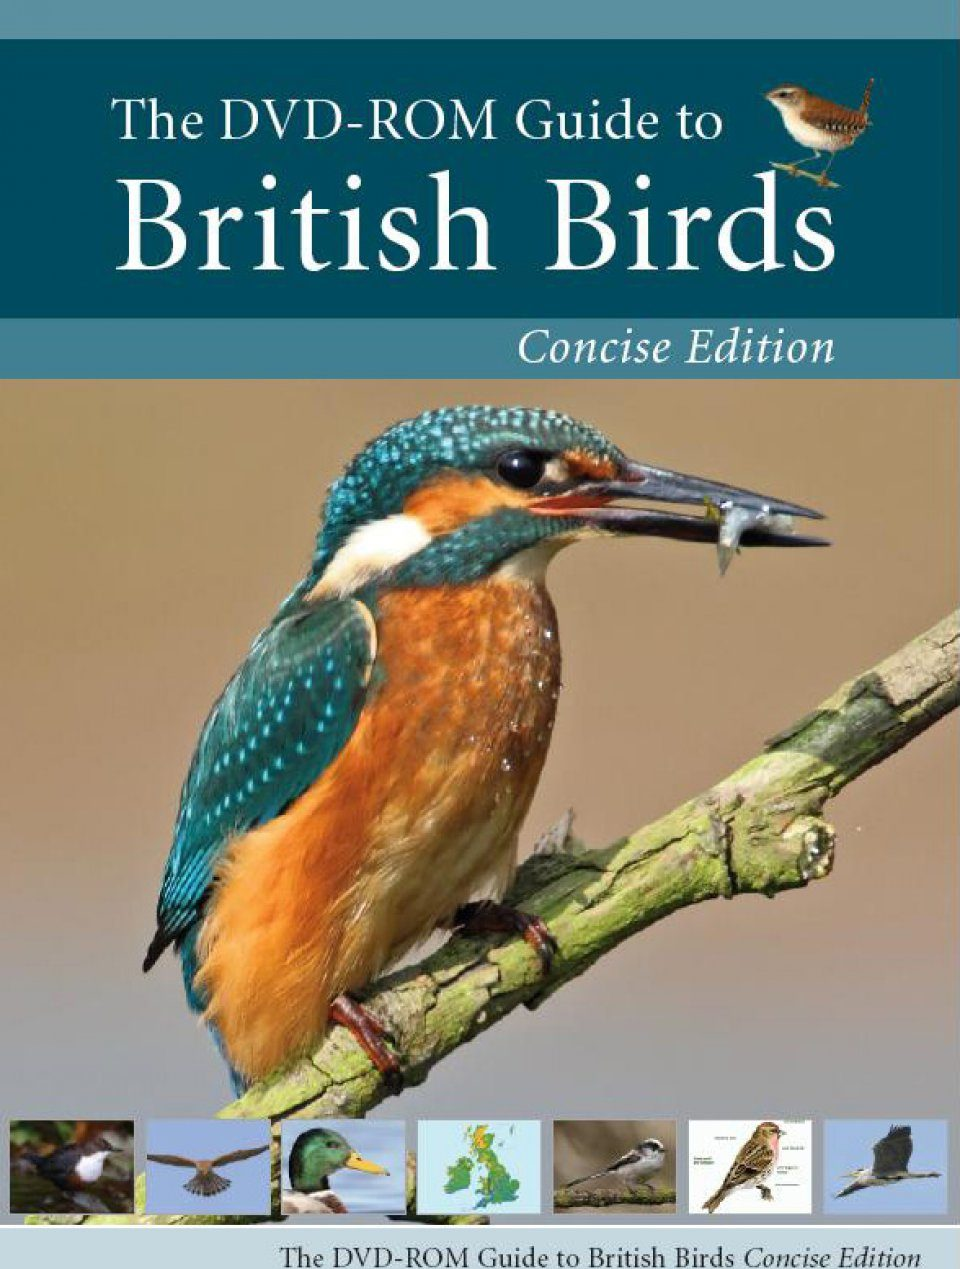 The DVD-ROM Guide to British Birds, Concise Edition